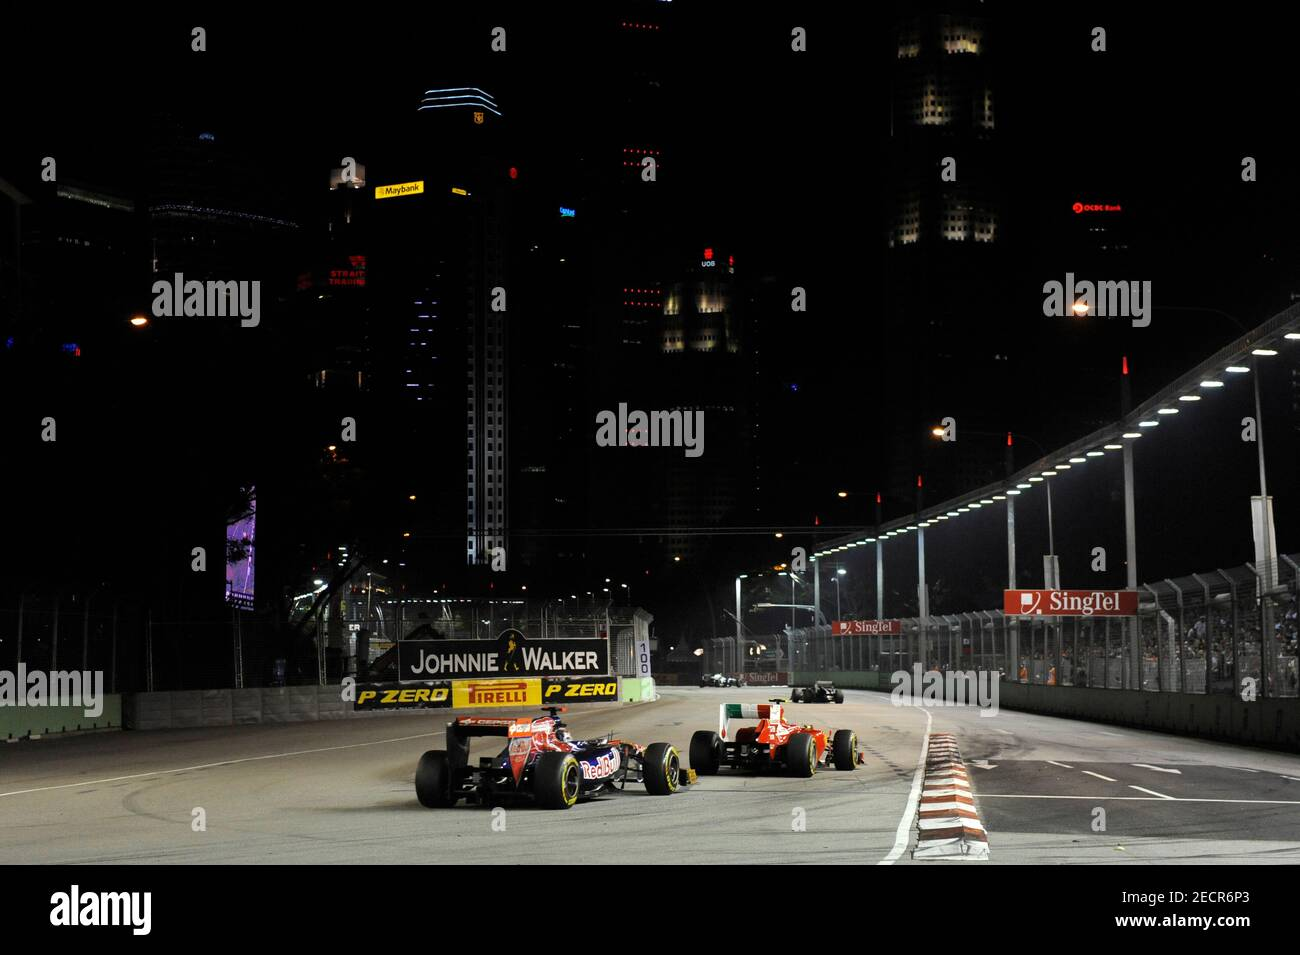 Formula One F1 Singapore Grand Prix 2011 Marina Bay Street Circuit Singapore 25 9 11 General View Of The Action During The Race Mandatory Credit Action Images Crispin Thruston Stock Photo Alamy